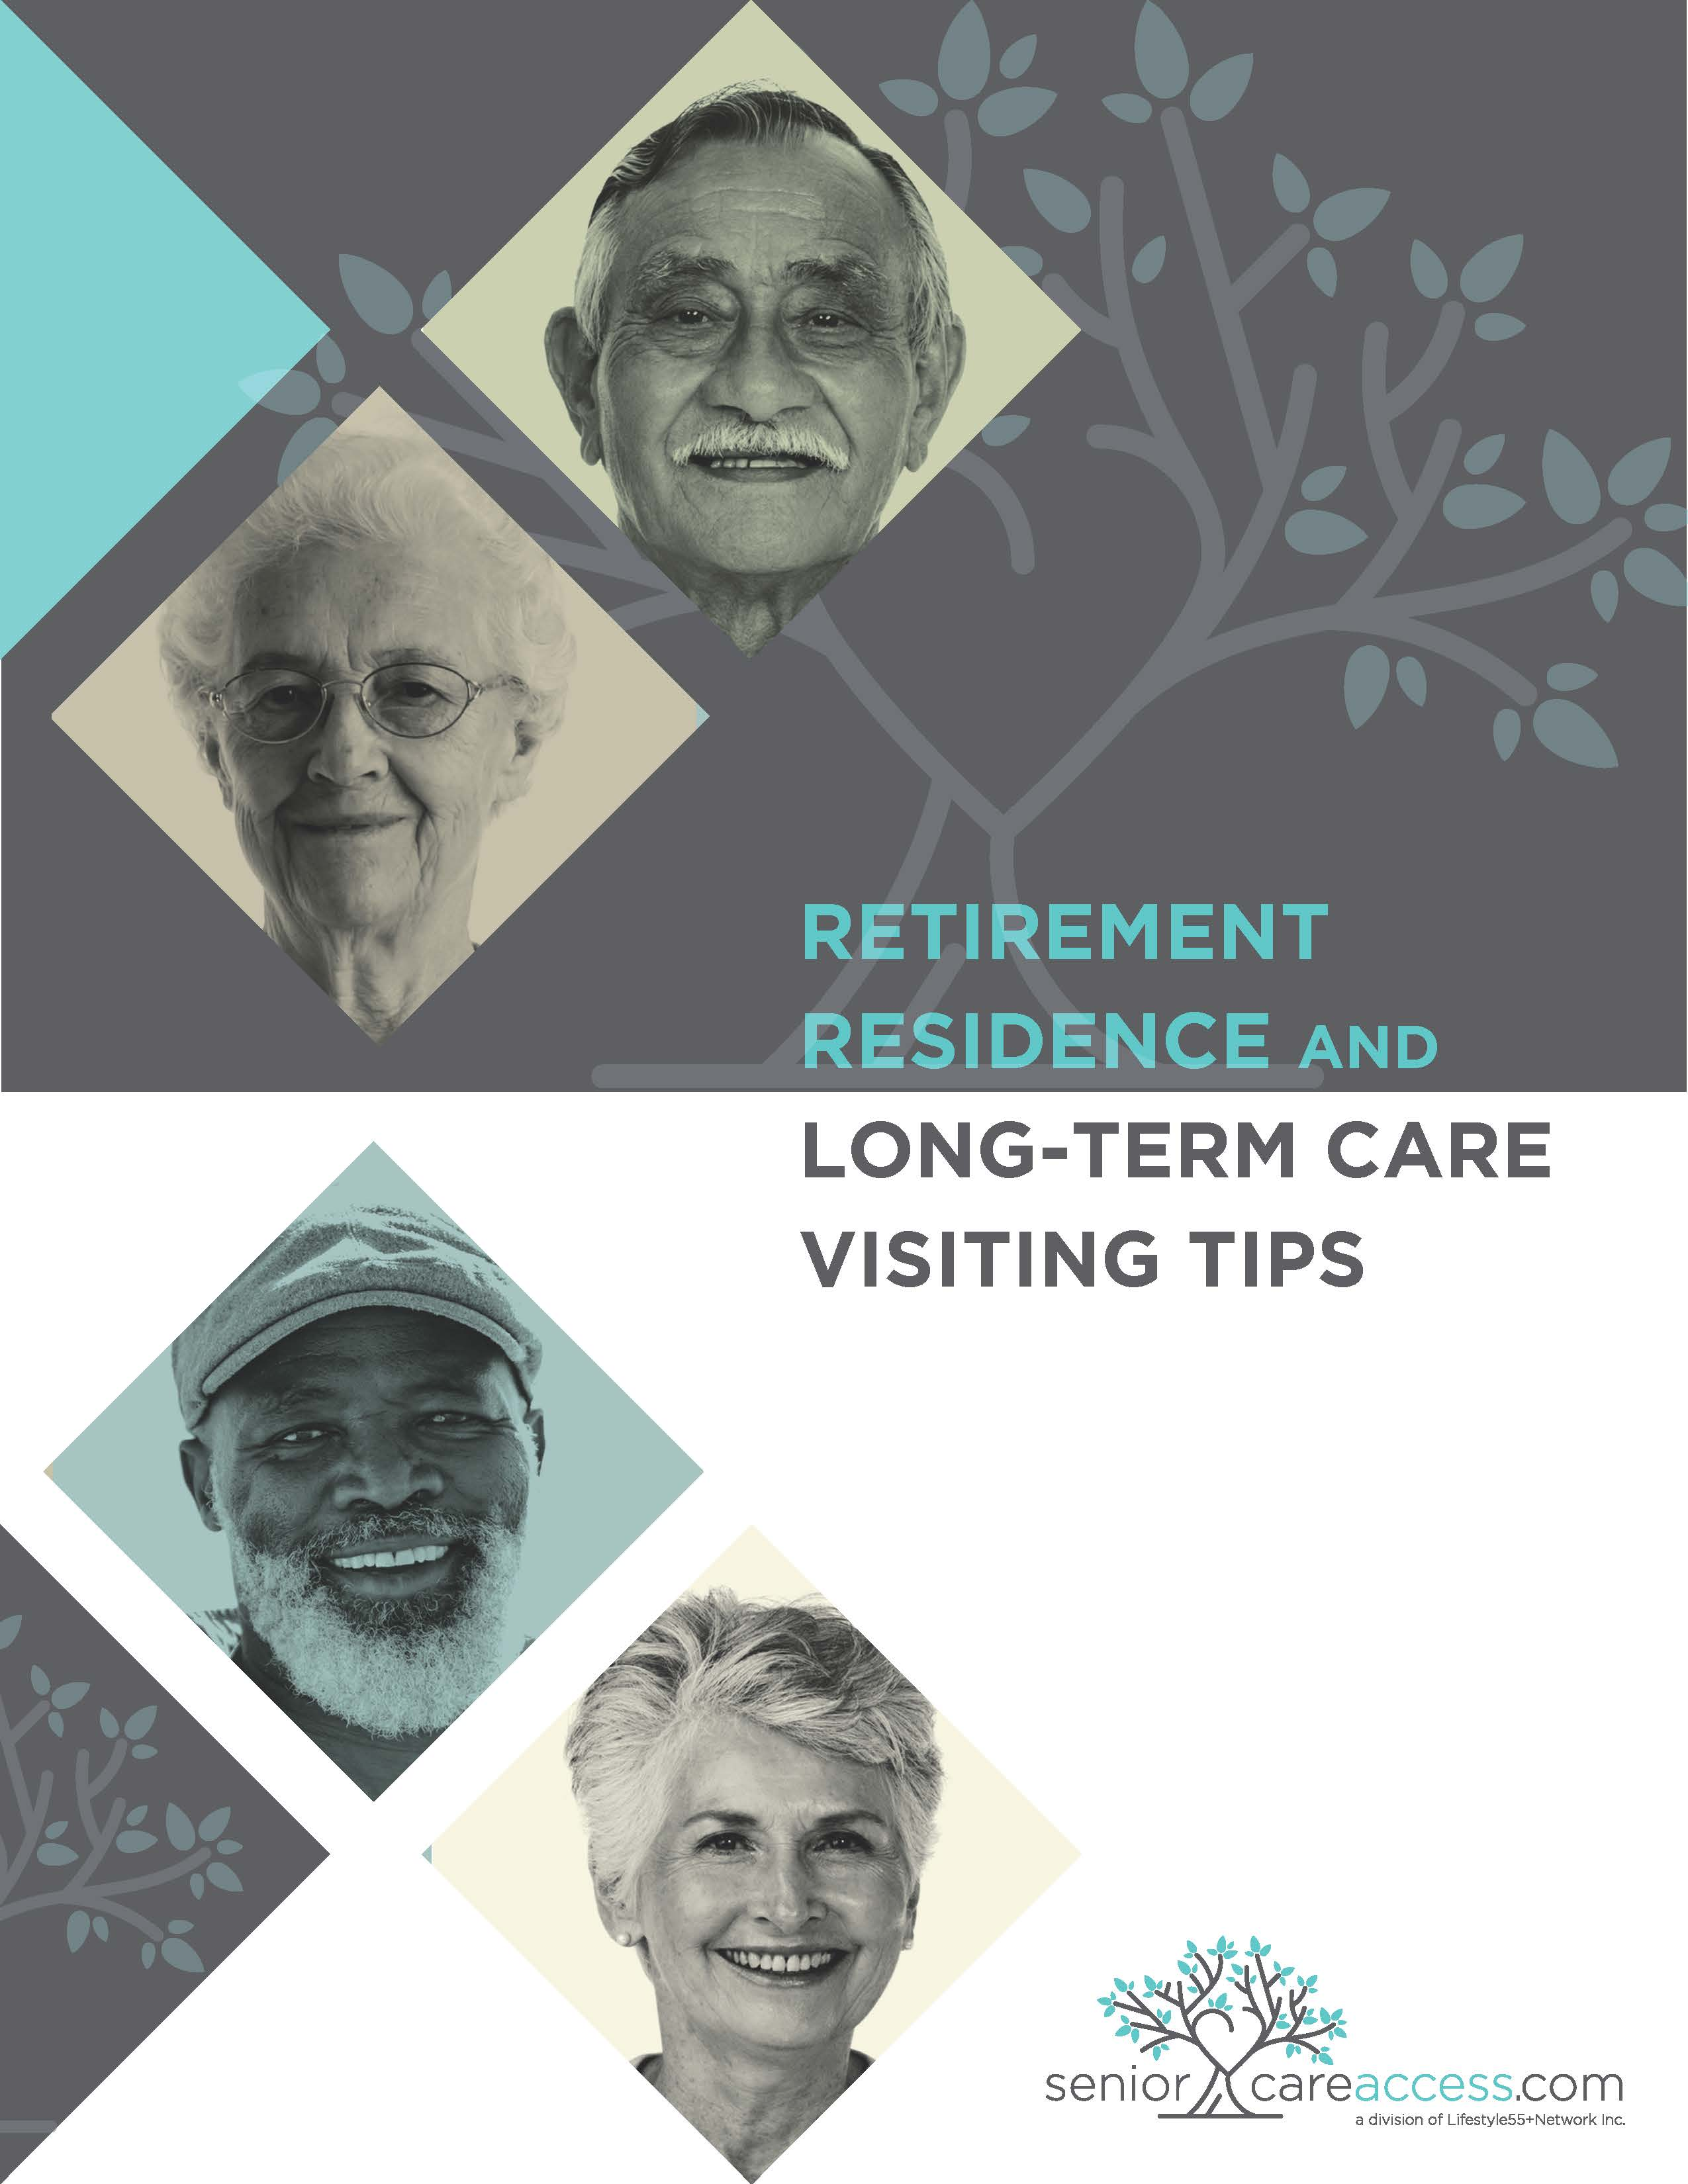 Retirement Home & Long-Term Care Visiting Tips